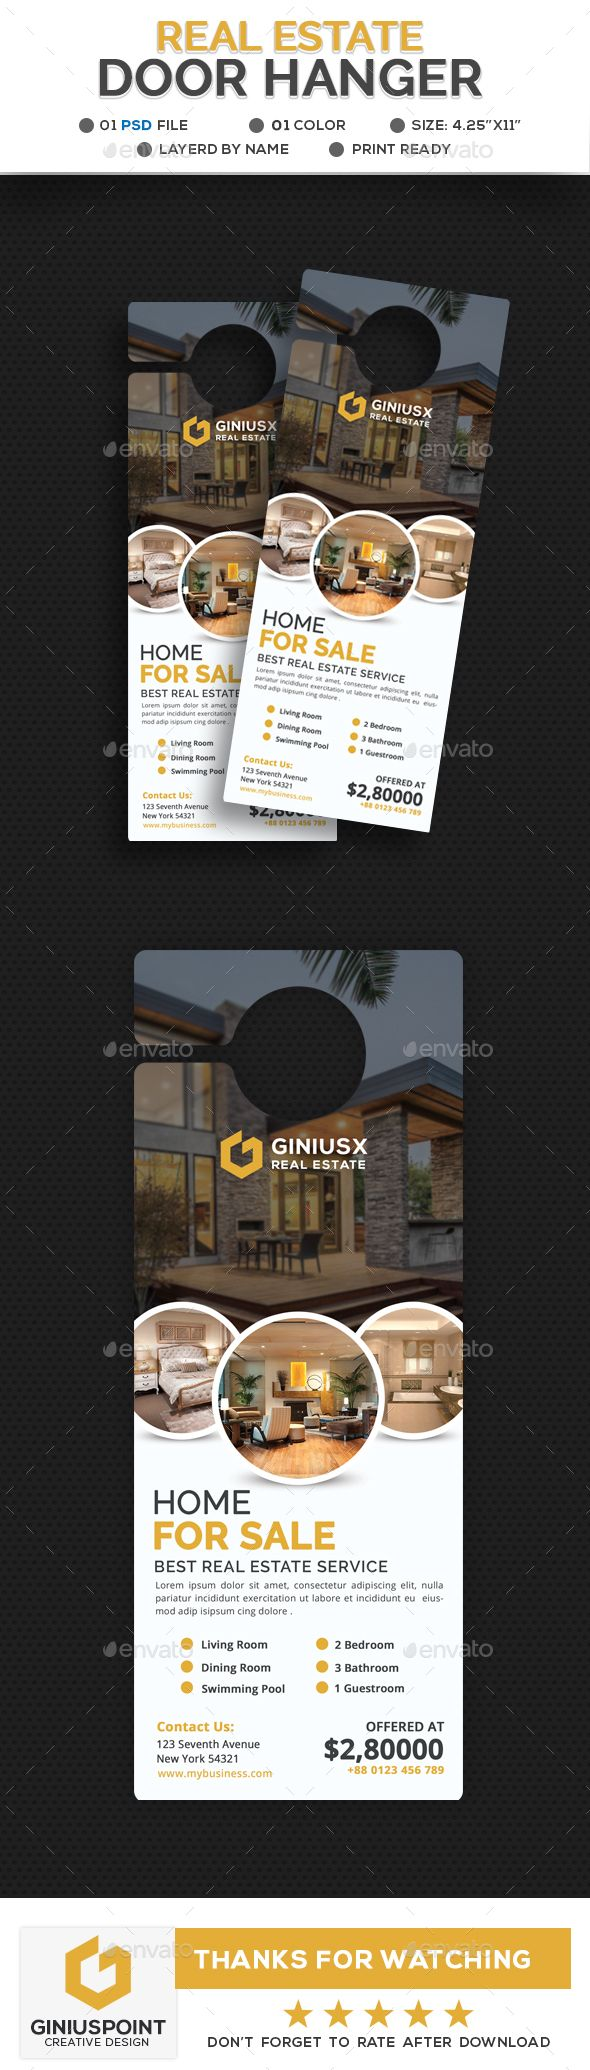 door hanger design real estate. #Real Estate Door Hanger - Miscellaneous Print Templates Design Real